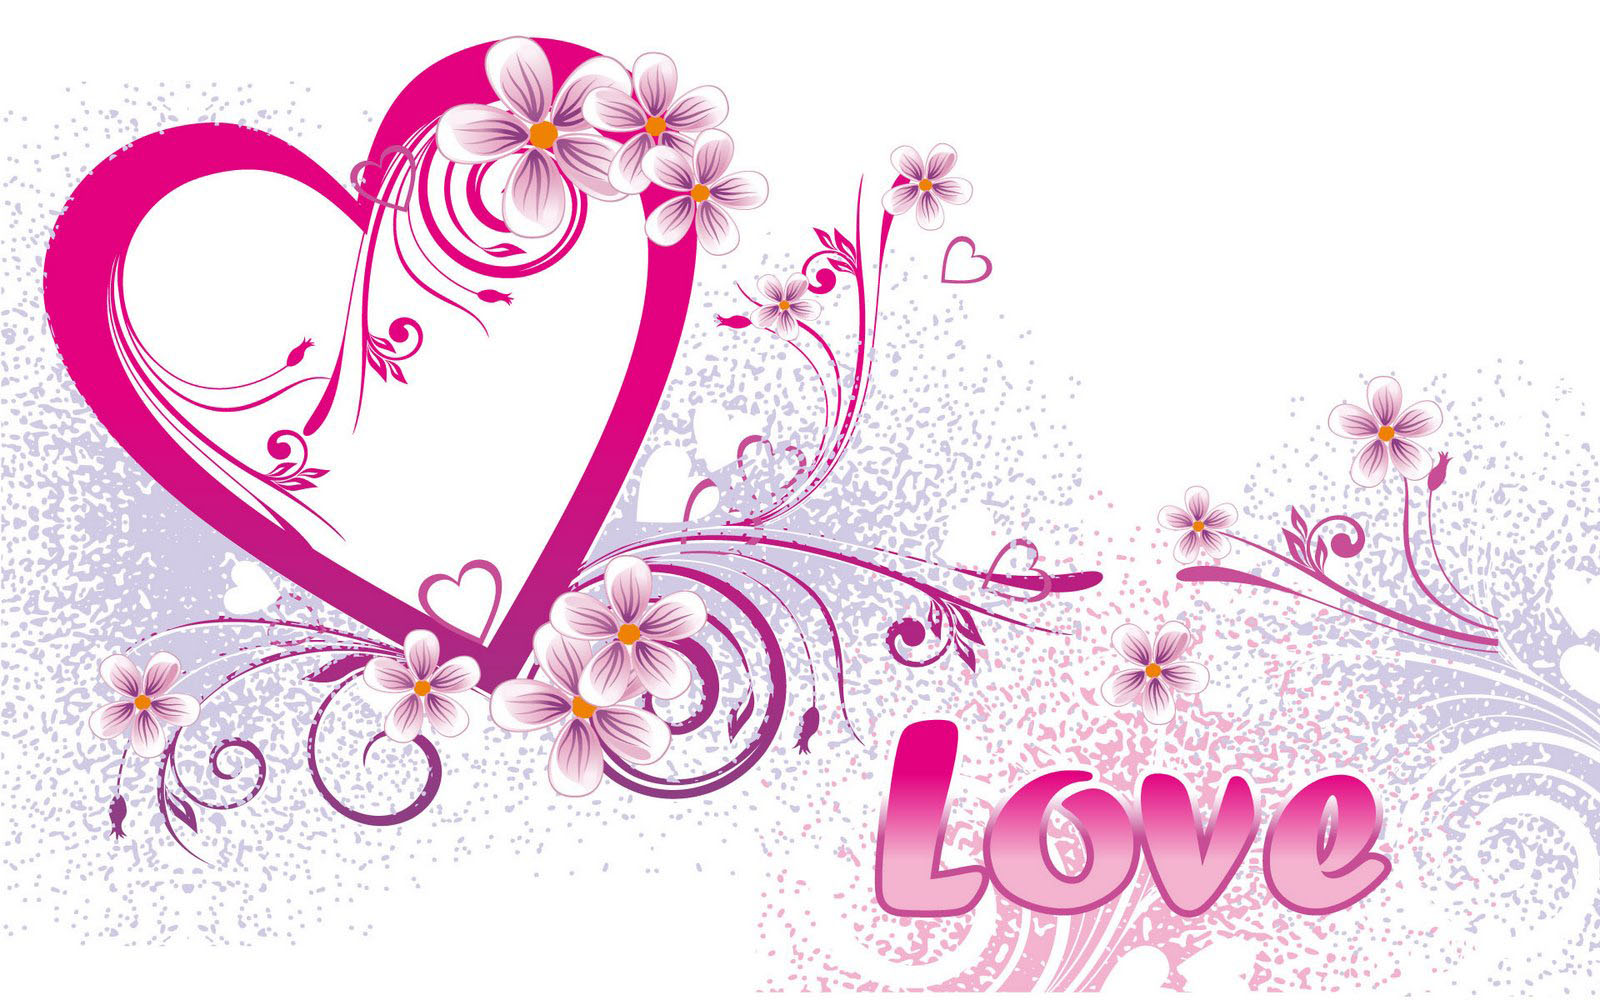 Love Wallpapers New Latest : wallpapers: New Love Wallpapers